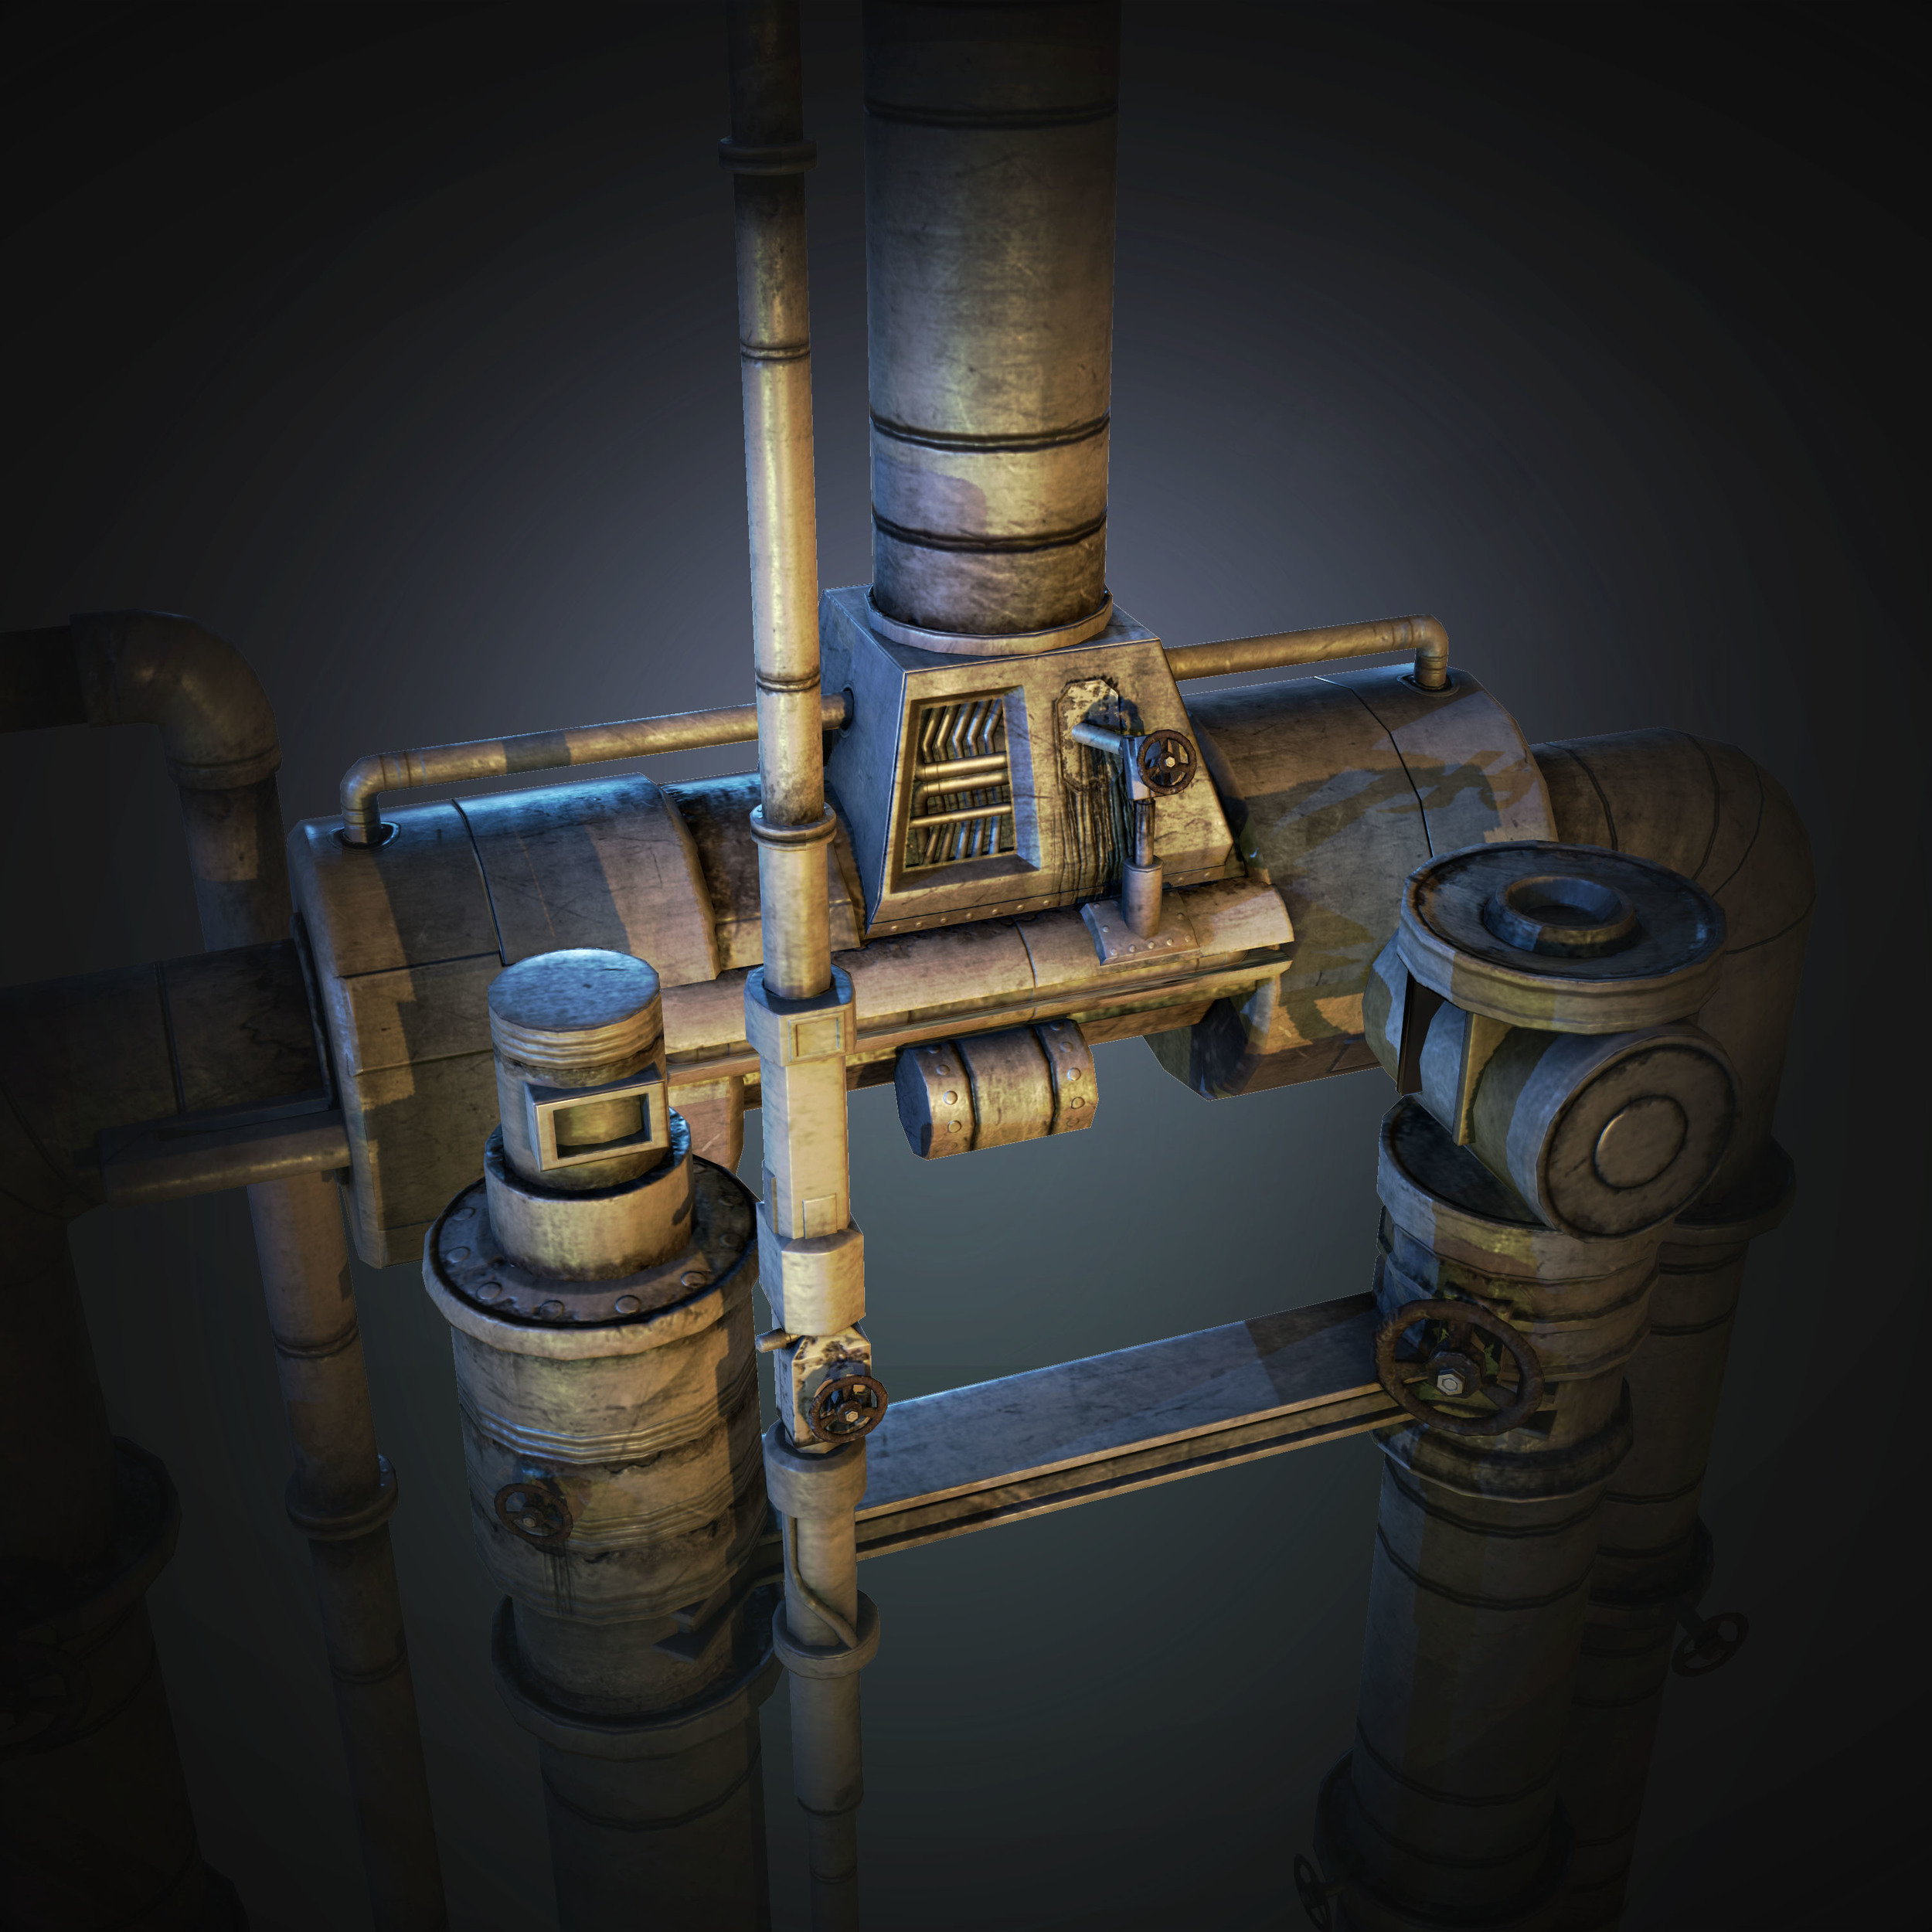 Pipes_Lowpoly_Angled2.jpg